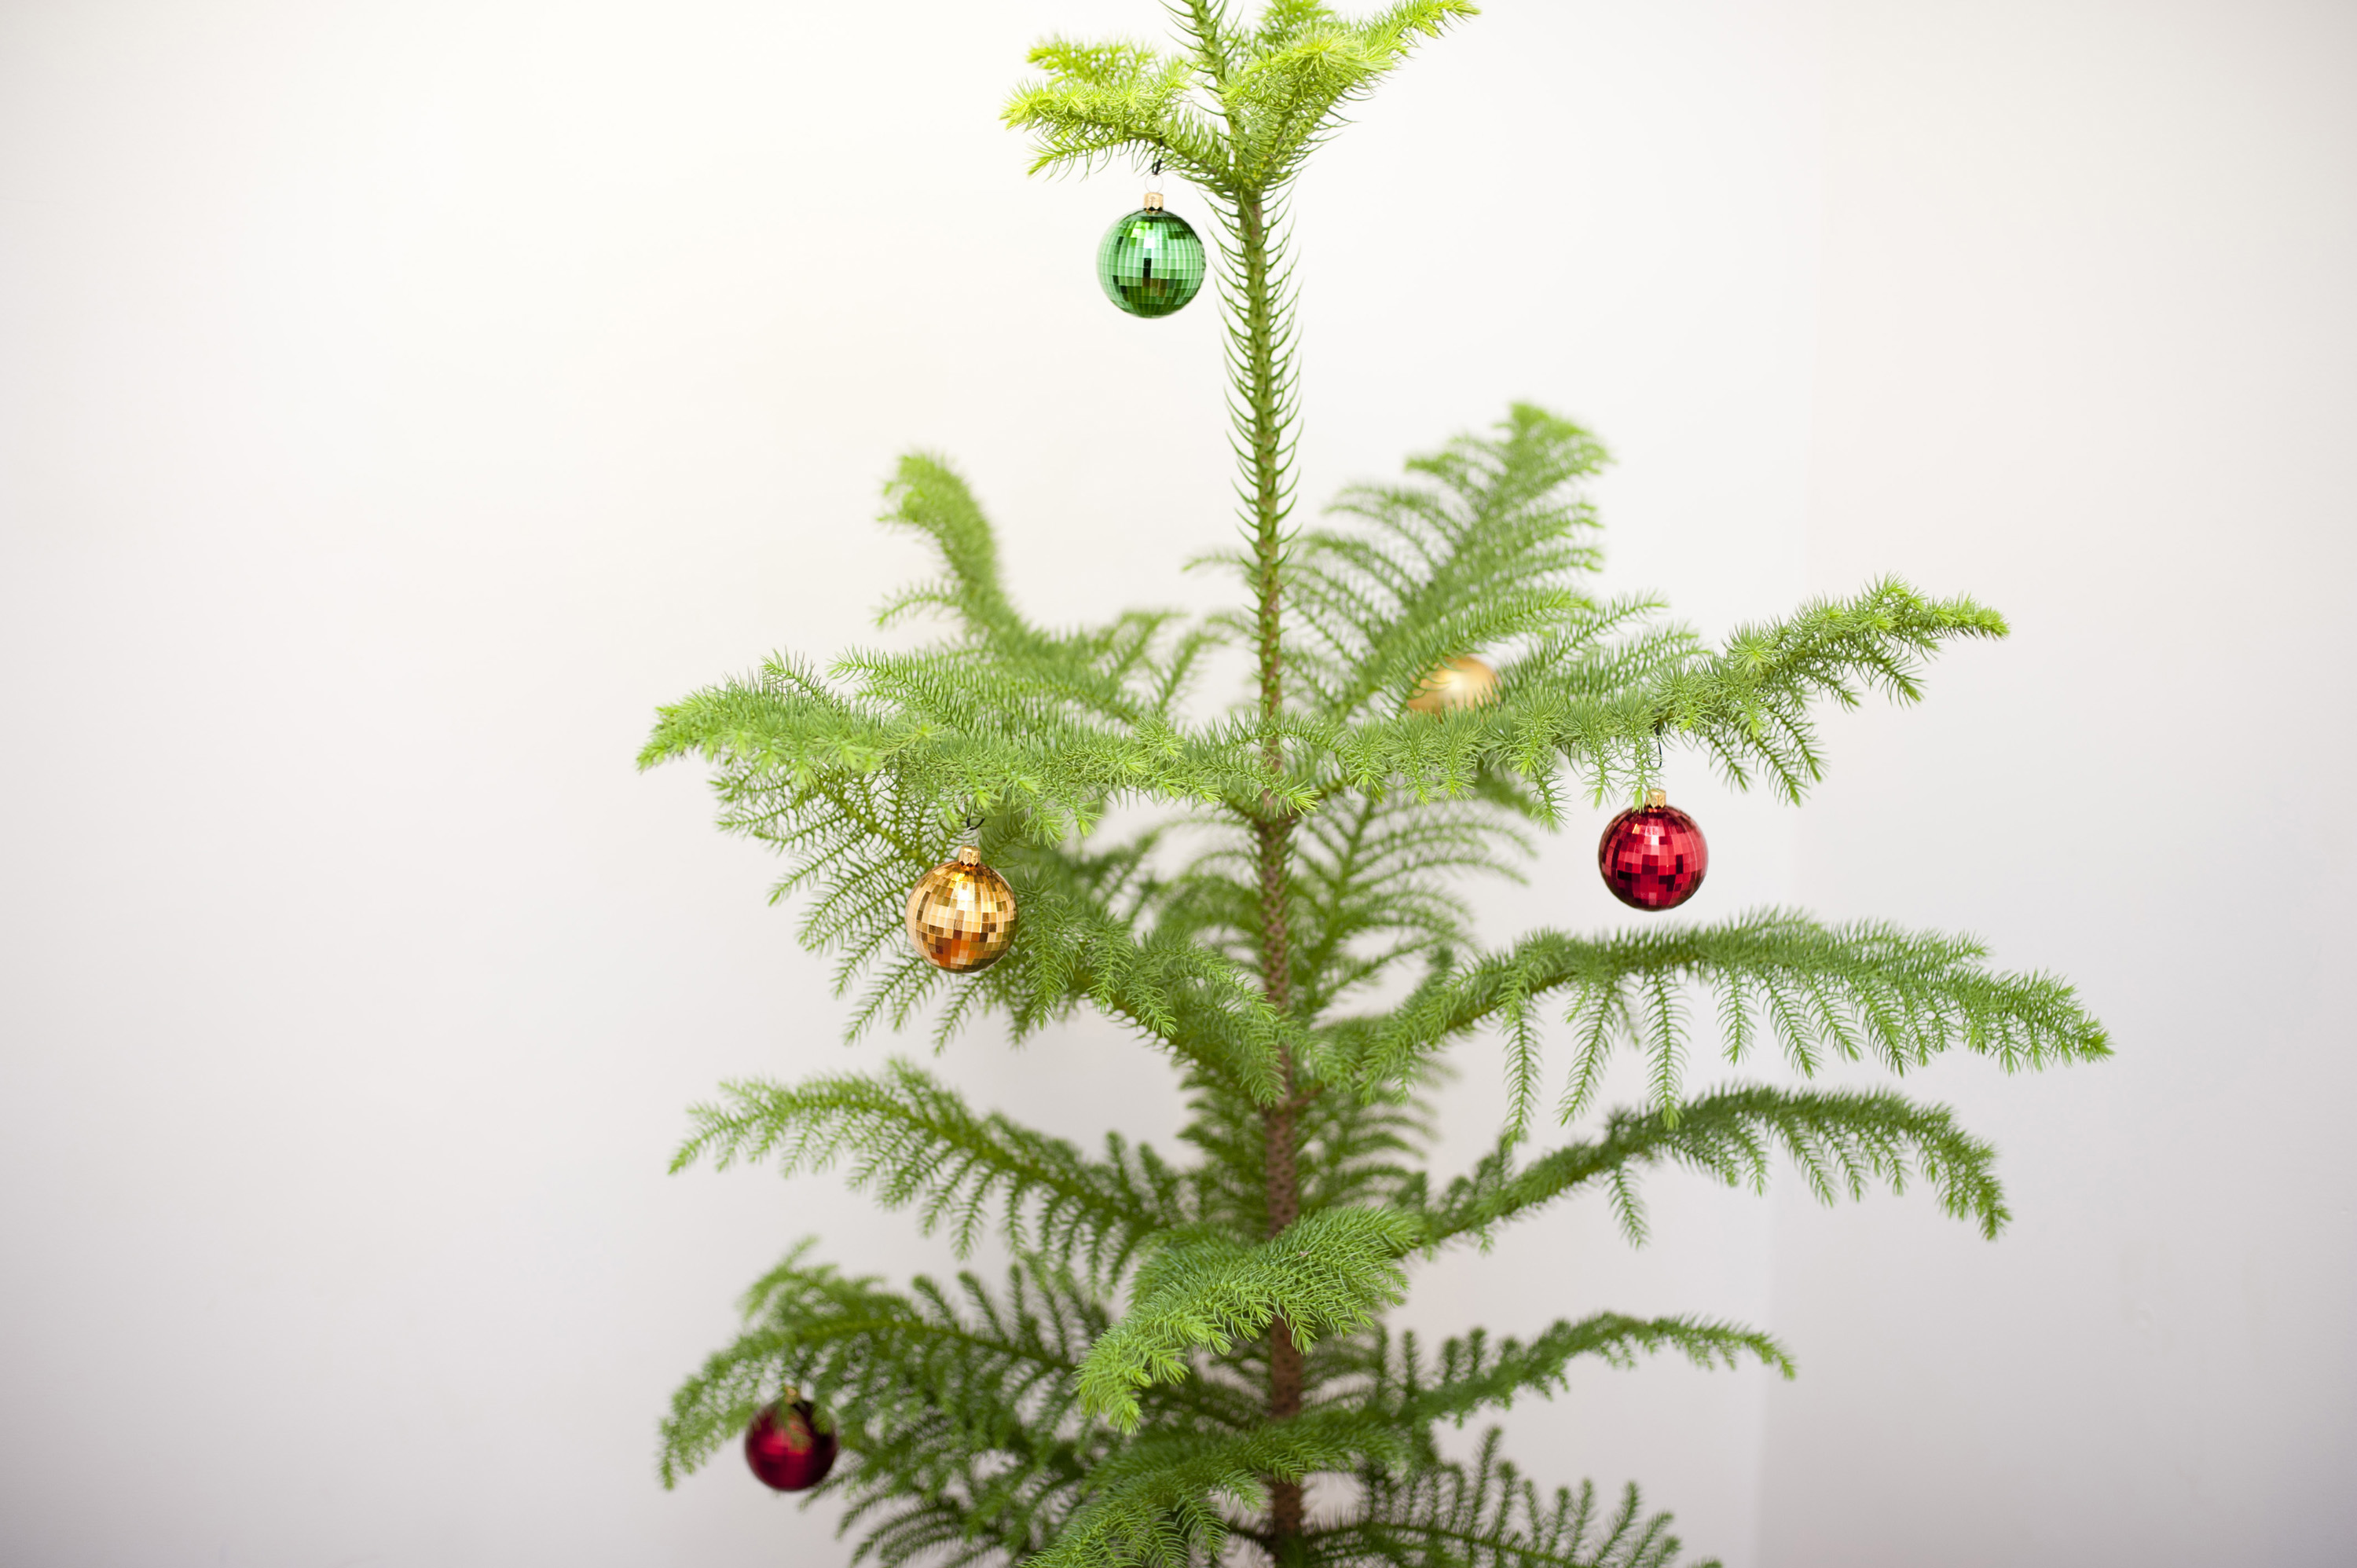 simple christmas decorations on a natural evergreen pine tree with colourful baubles hanging on the dainty - Free Christmas Decorations